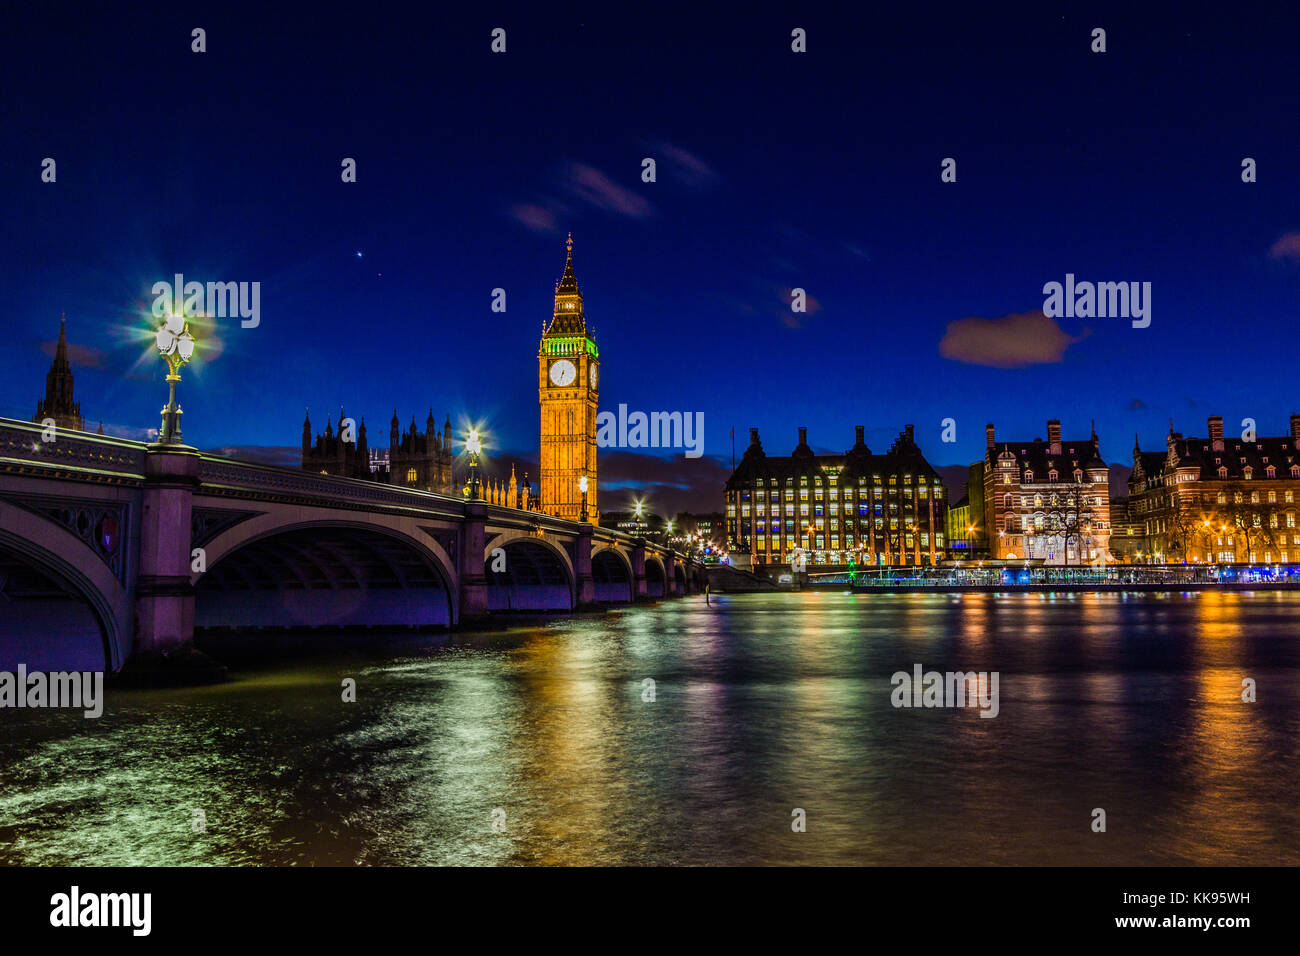 Famous landmark, Big Ben clock tower at night taken from the South side of the Thames River in central London. - Stock Image